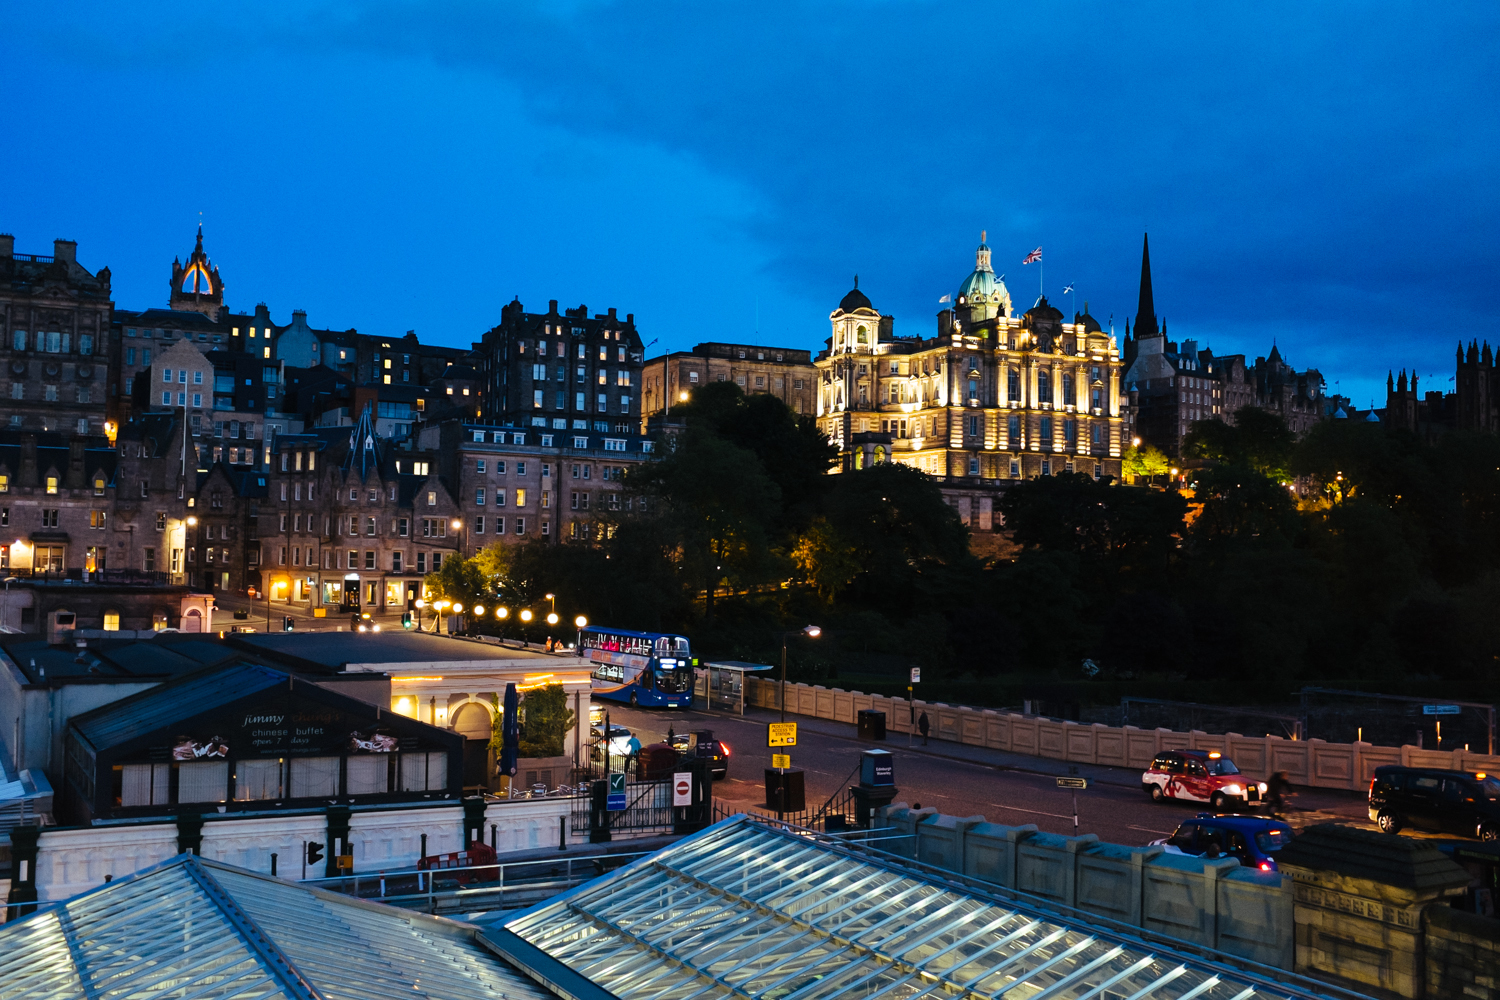 Bank of Scotland & Motel One by night